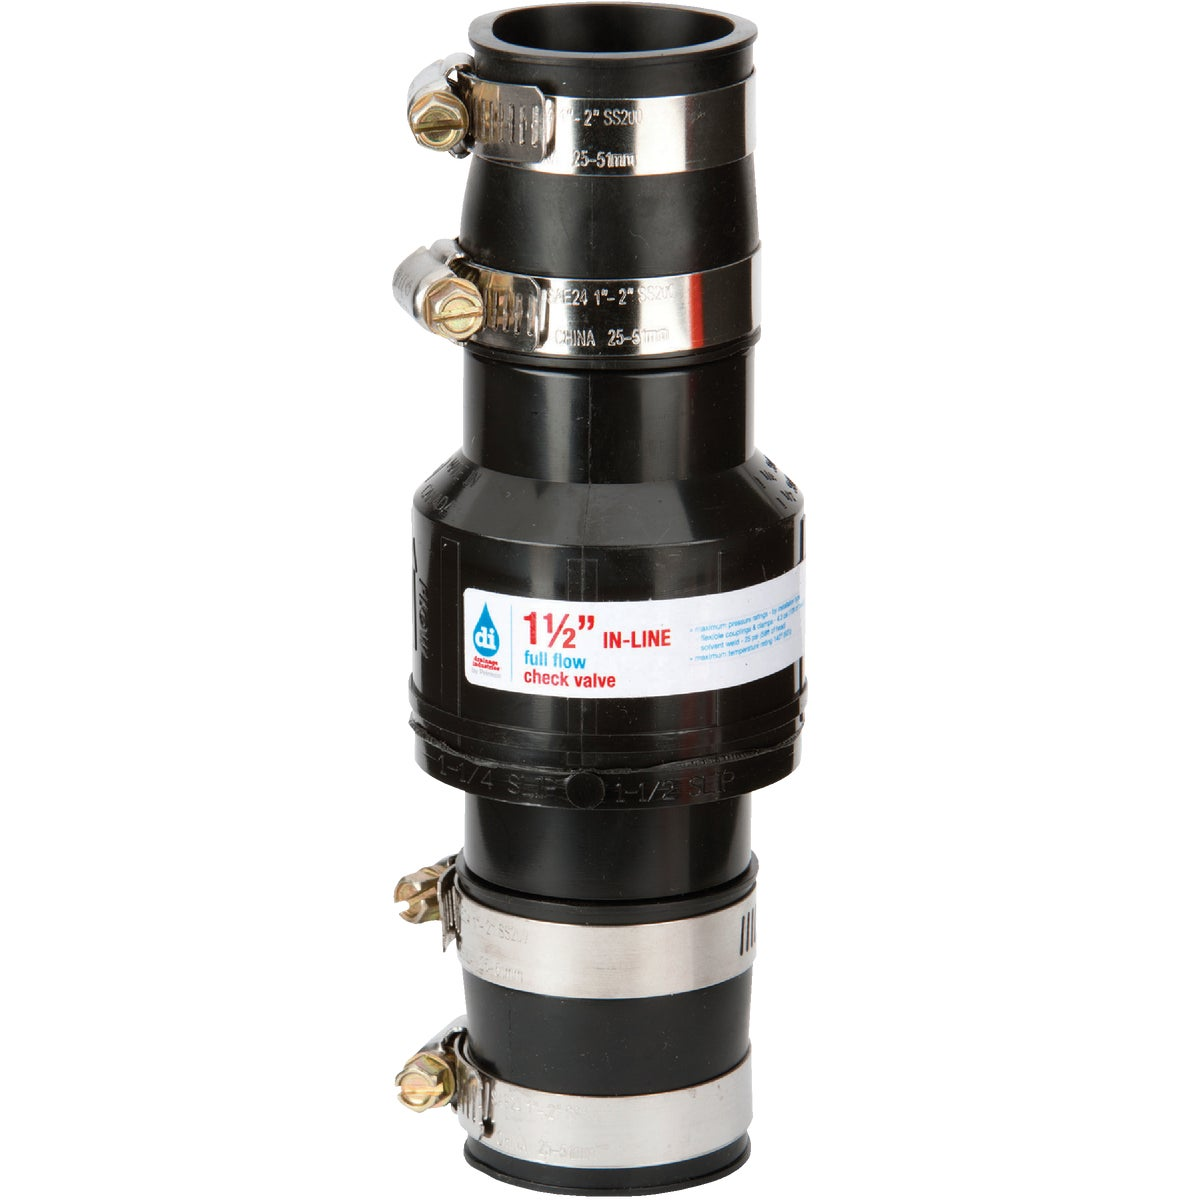 "1-1/2"" CHECK VALVE - 2260/150DRS by Drainage Industries"